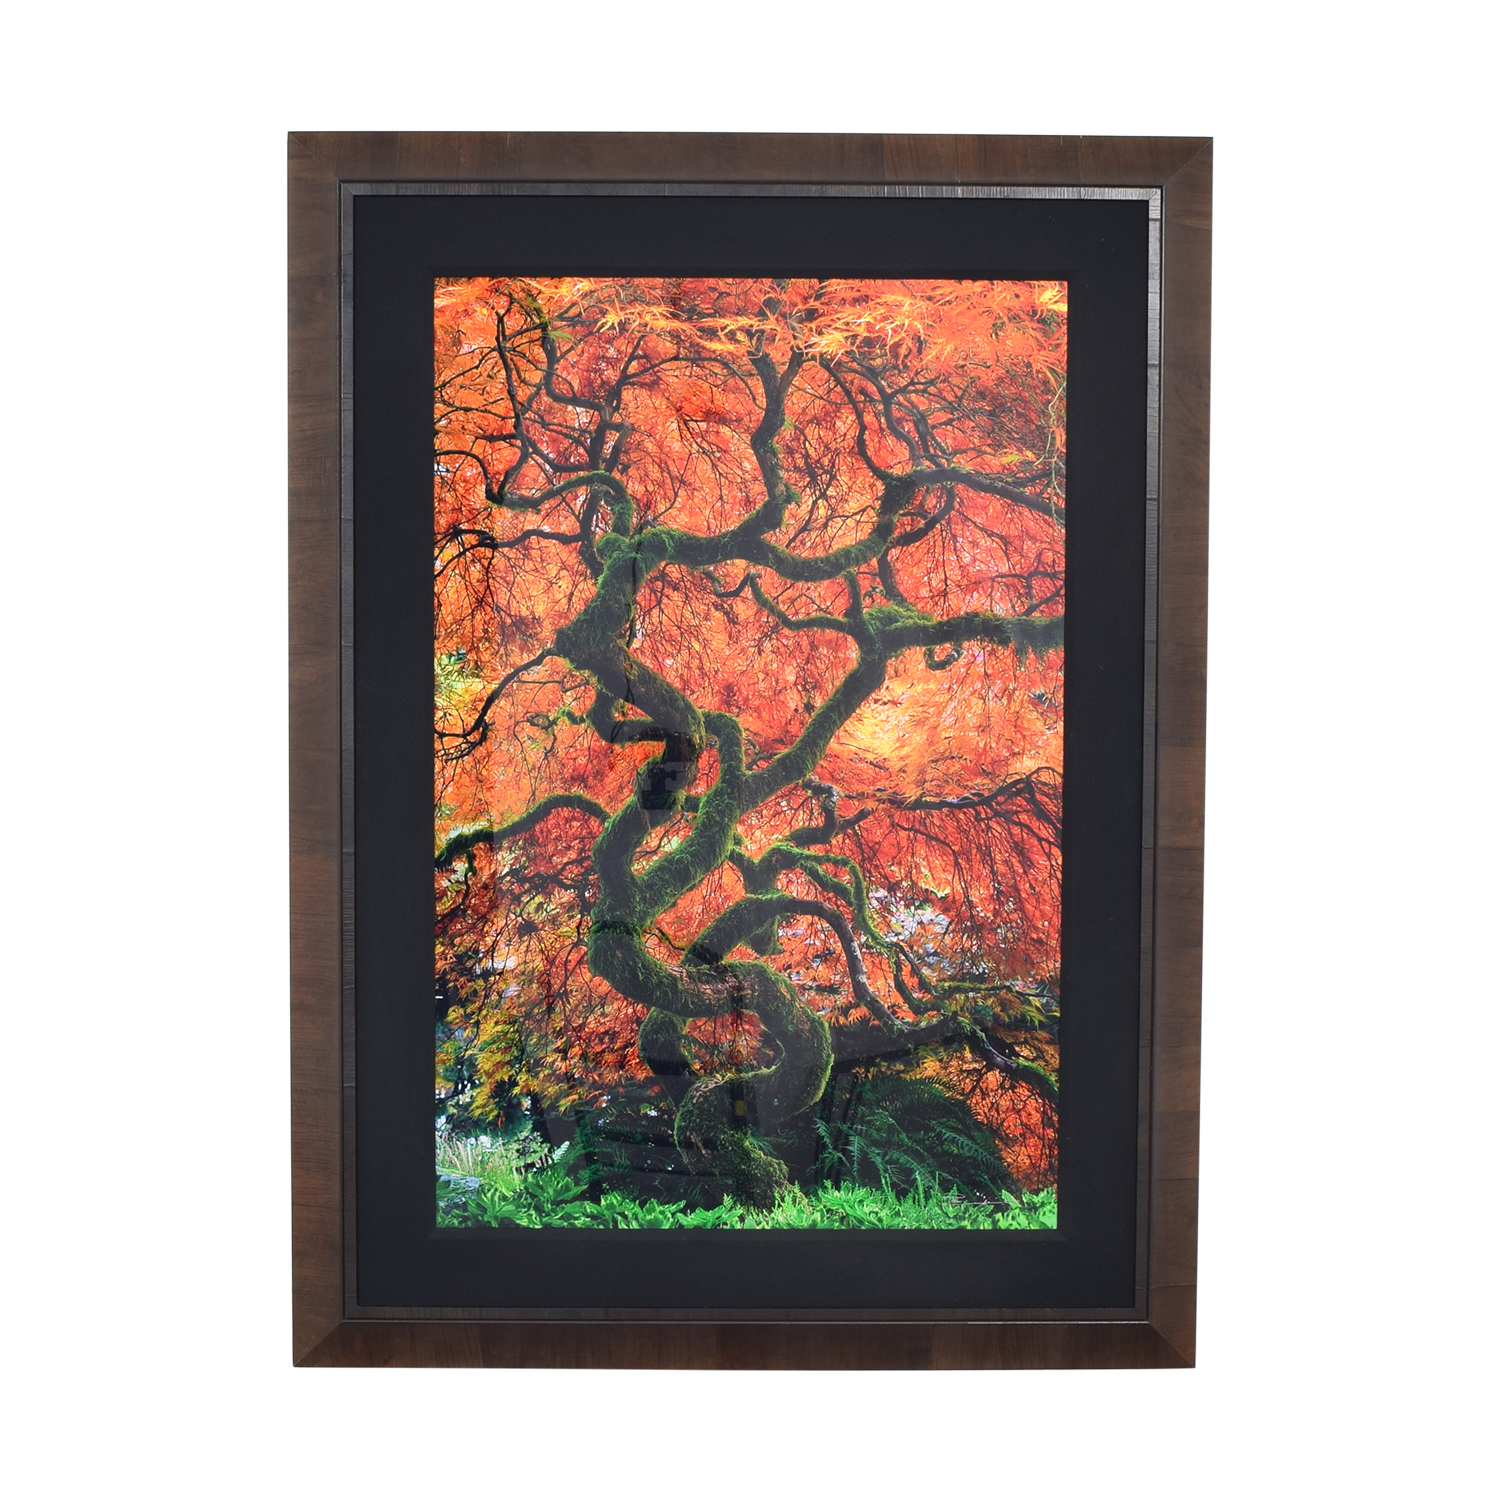 Peter Lik Infinity Tree Framed Wall Art